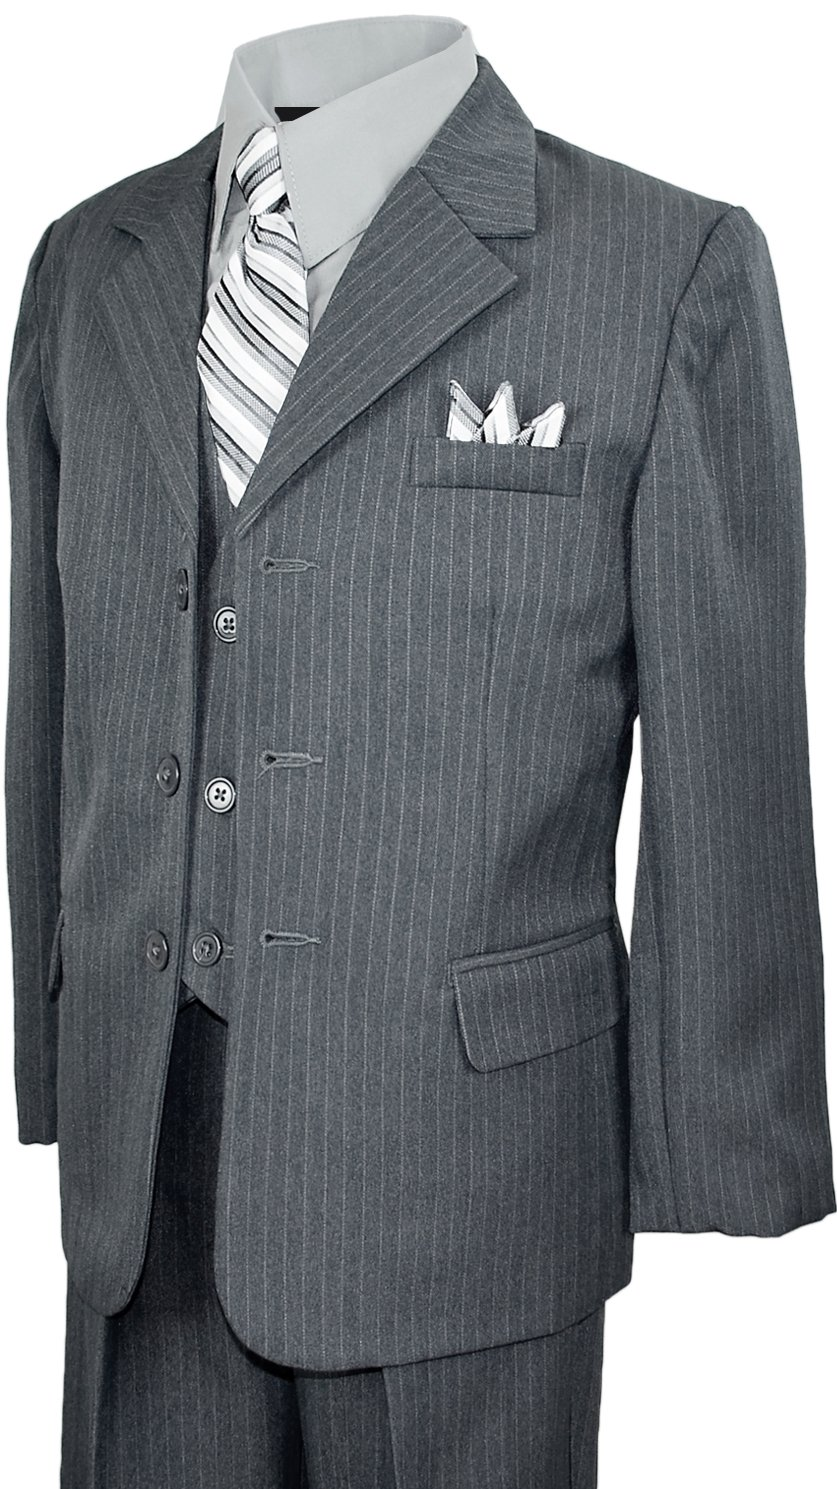 Boys Pinstripe Suit in Grey with Matching Tie Size 4T by Black n Bianco